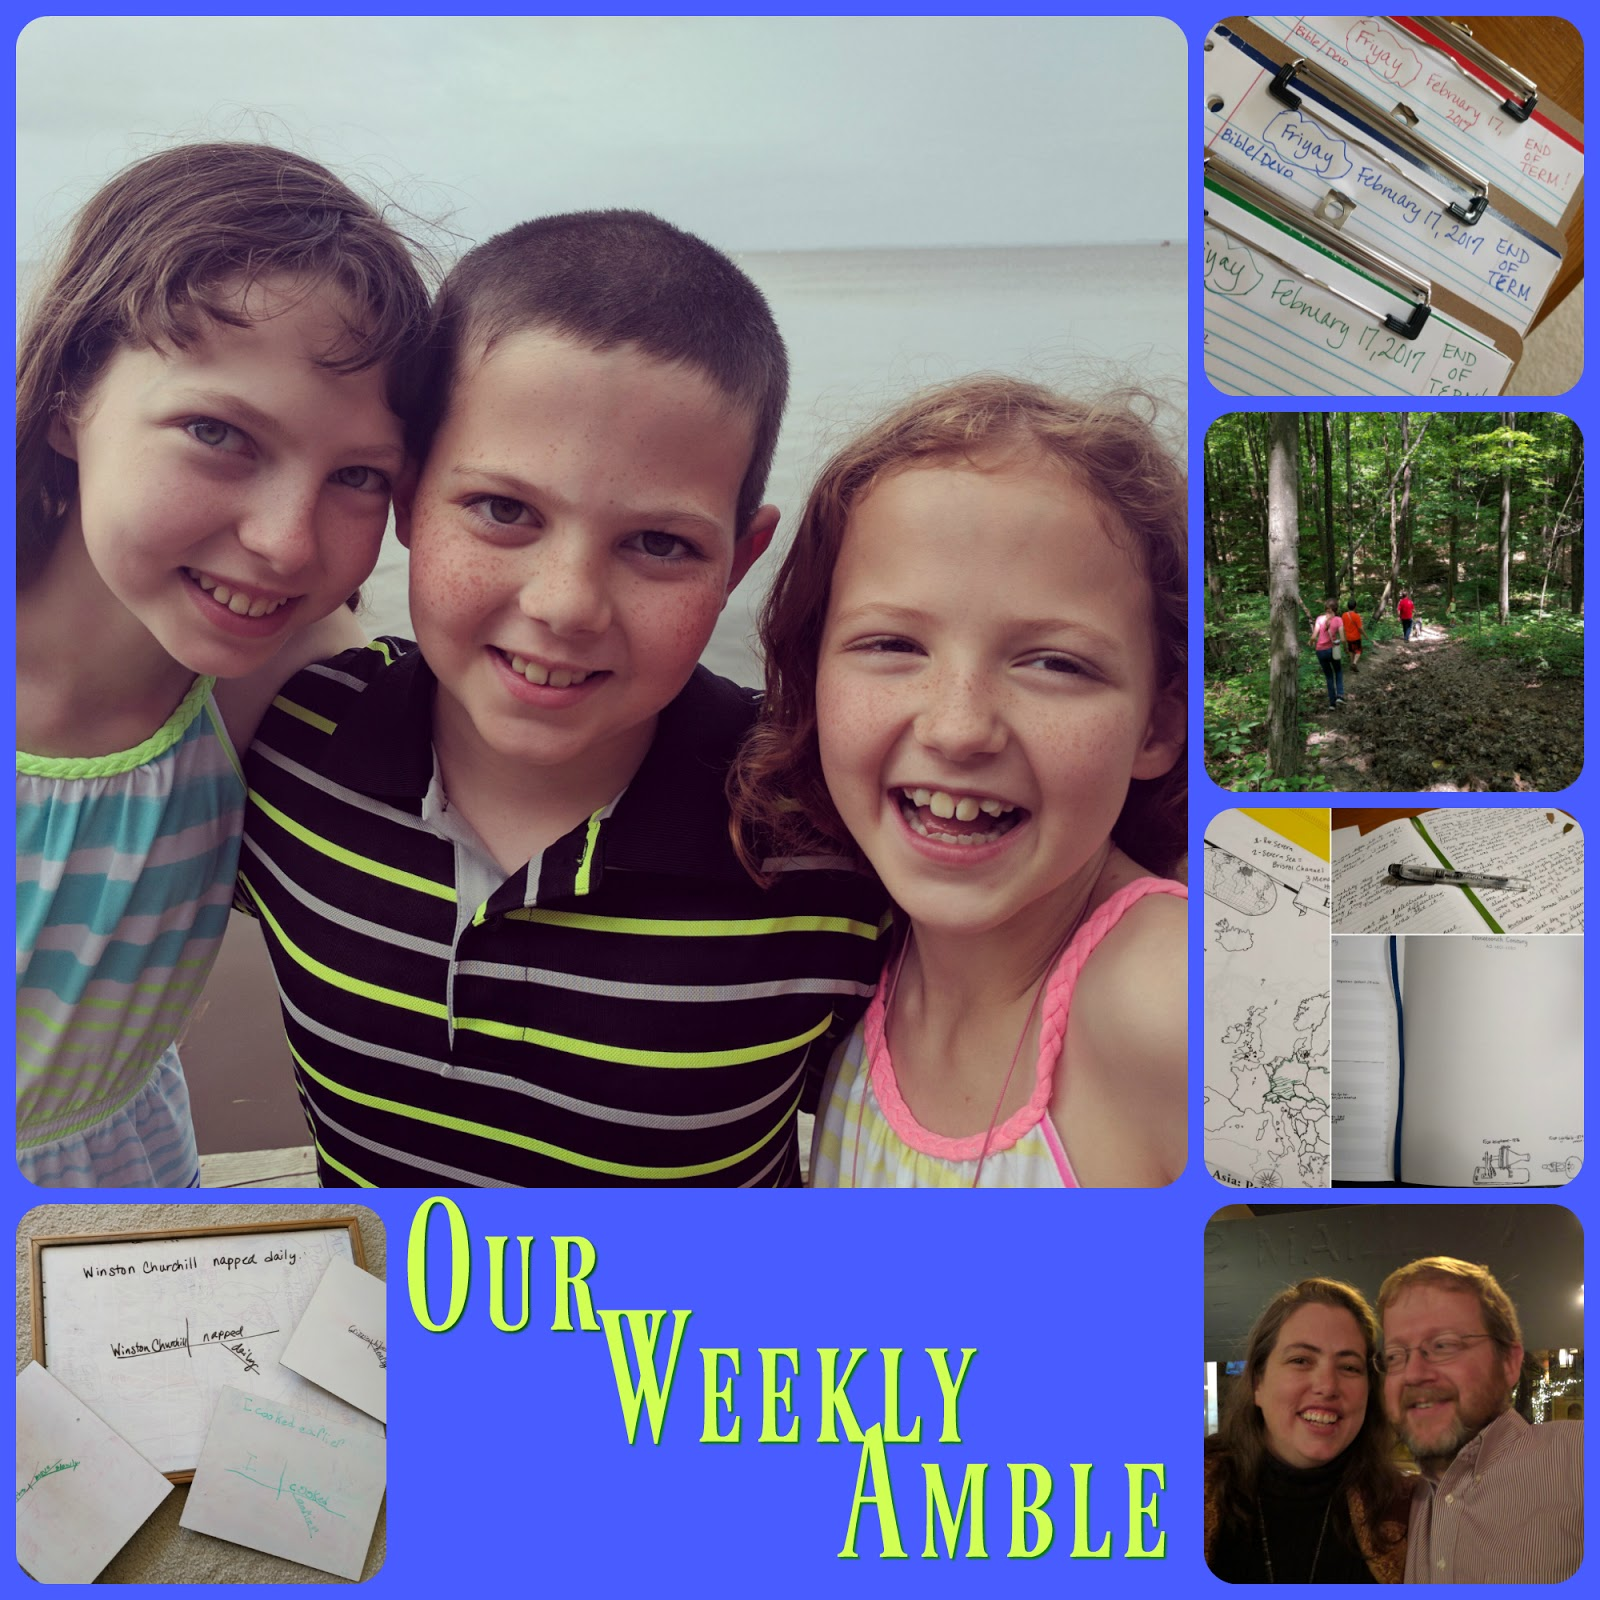 Our Weekly Amble for February 12-16, 2018